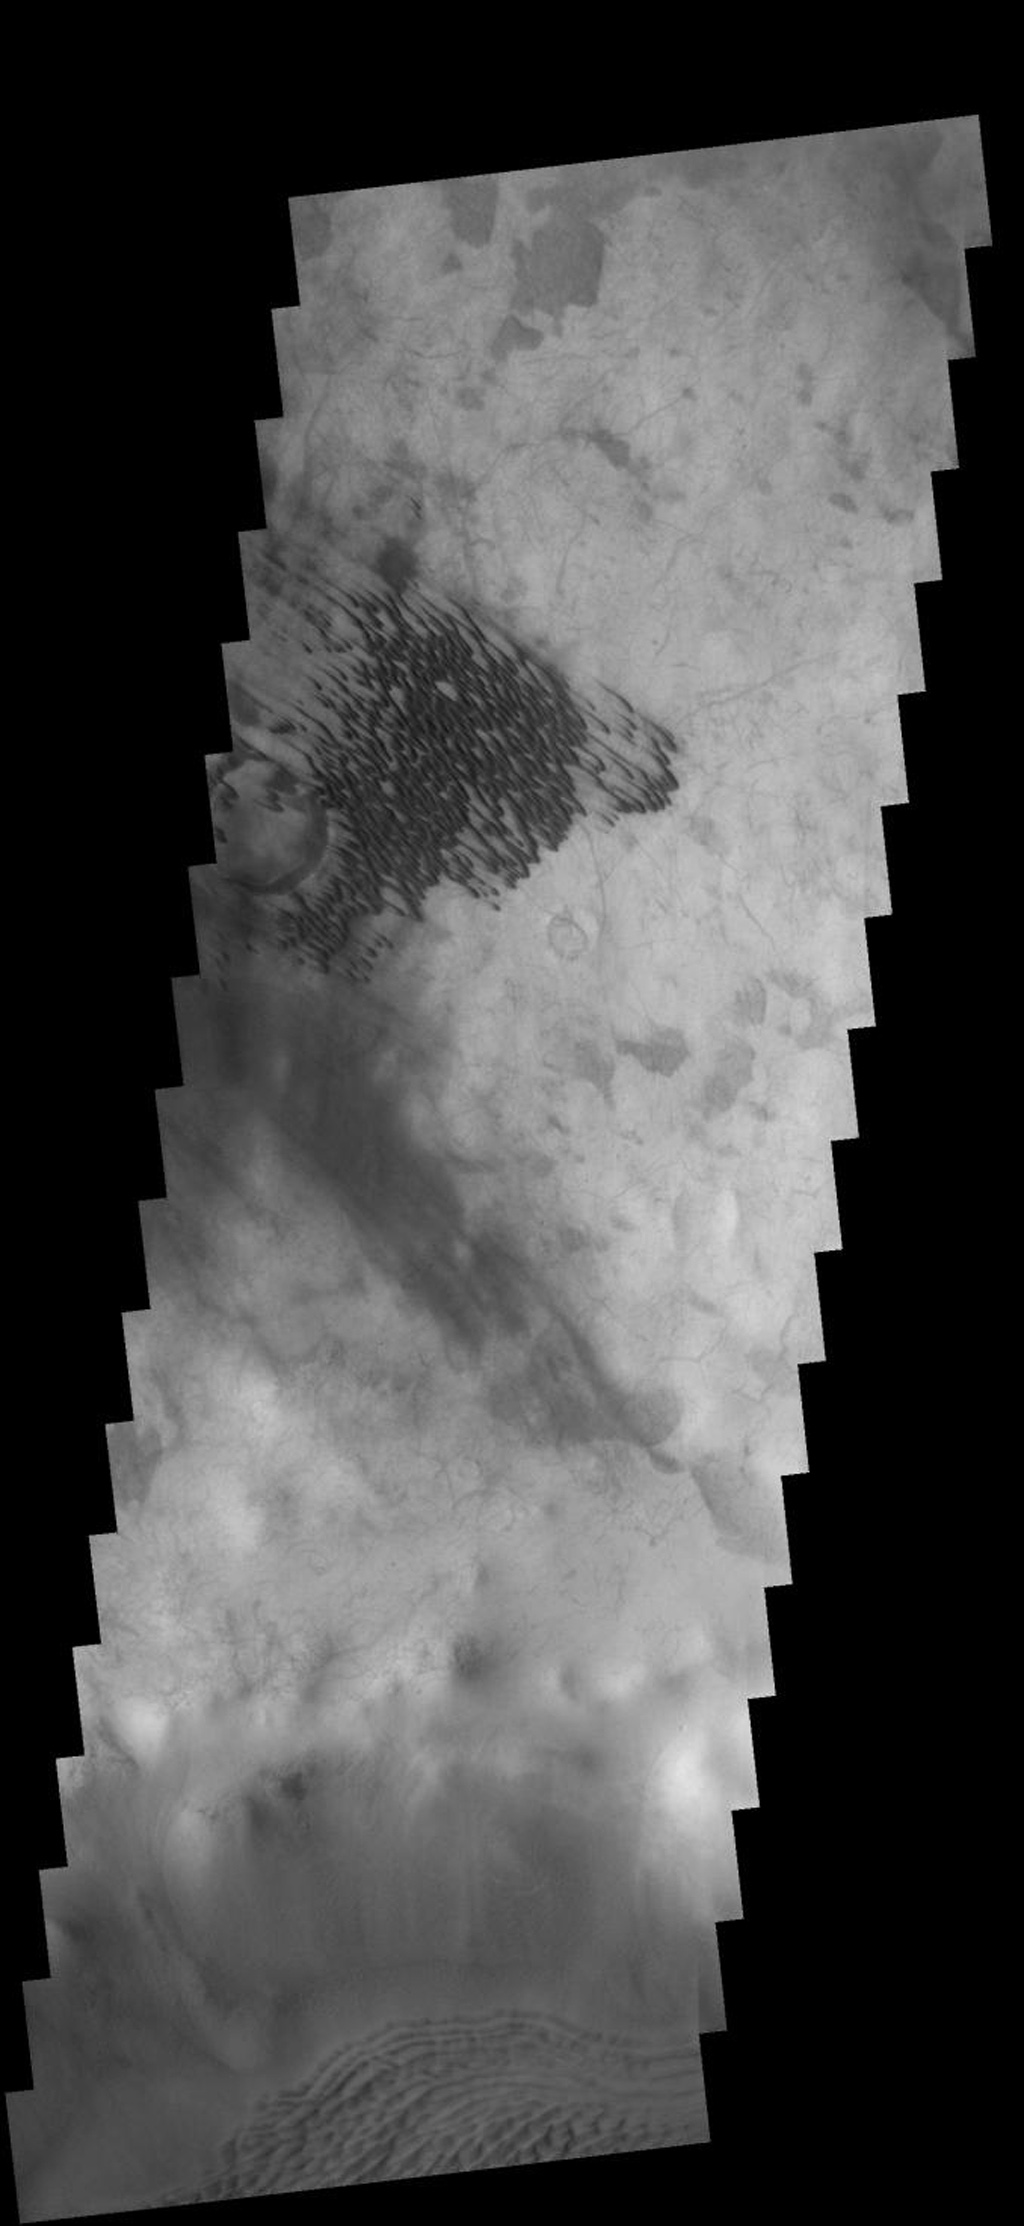 These dunes are located on the floor of an unnamed crater SE of Campbell Crater on Mars as seen by NASA's 2001 Mars Odyssey spacecraft.